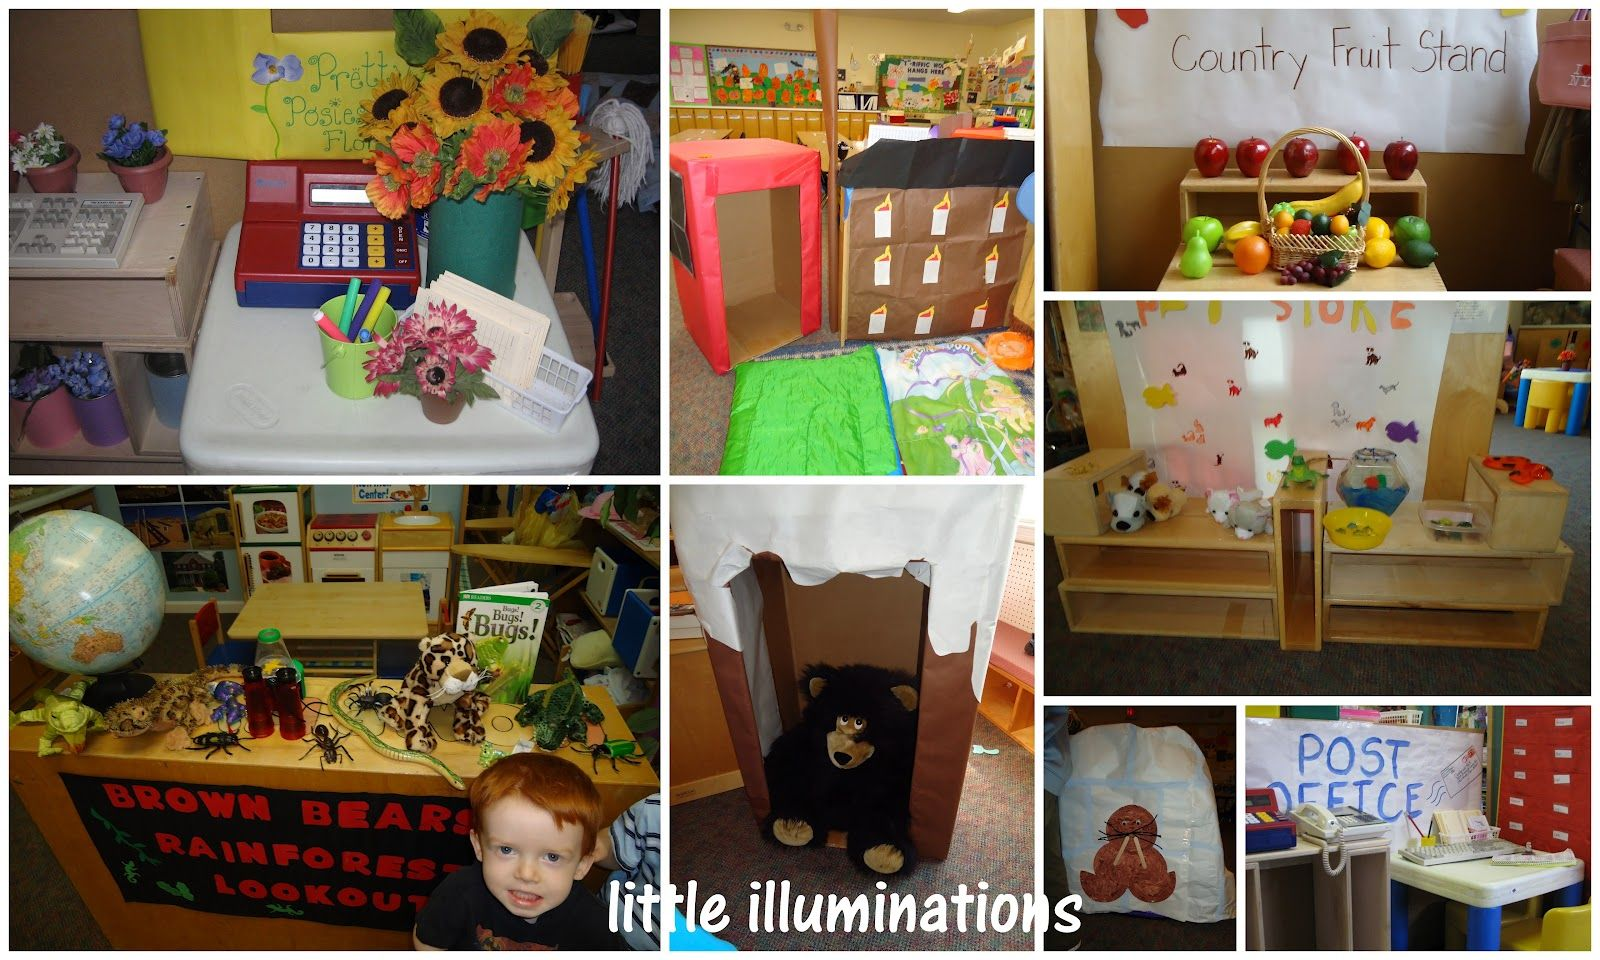 Creative Pretend Play Opportunities Allow Children To Try